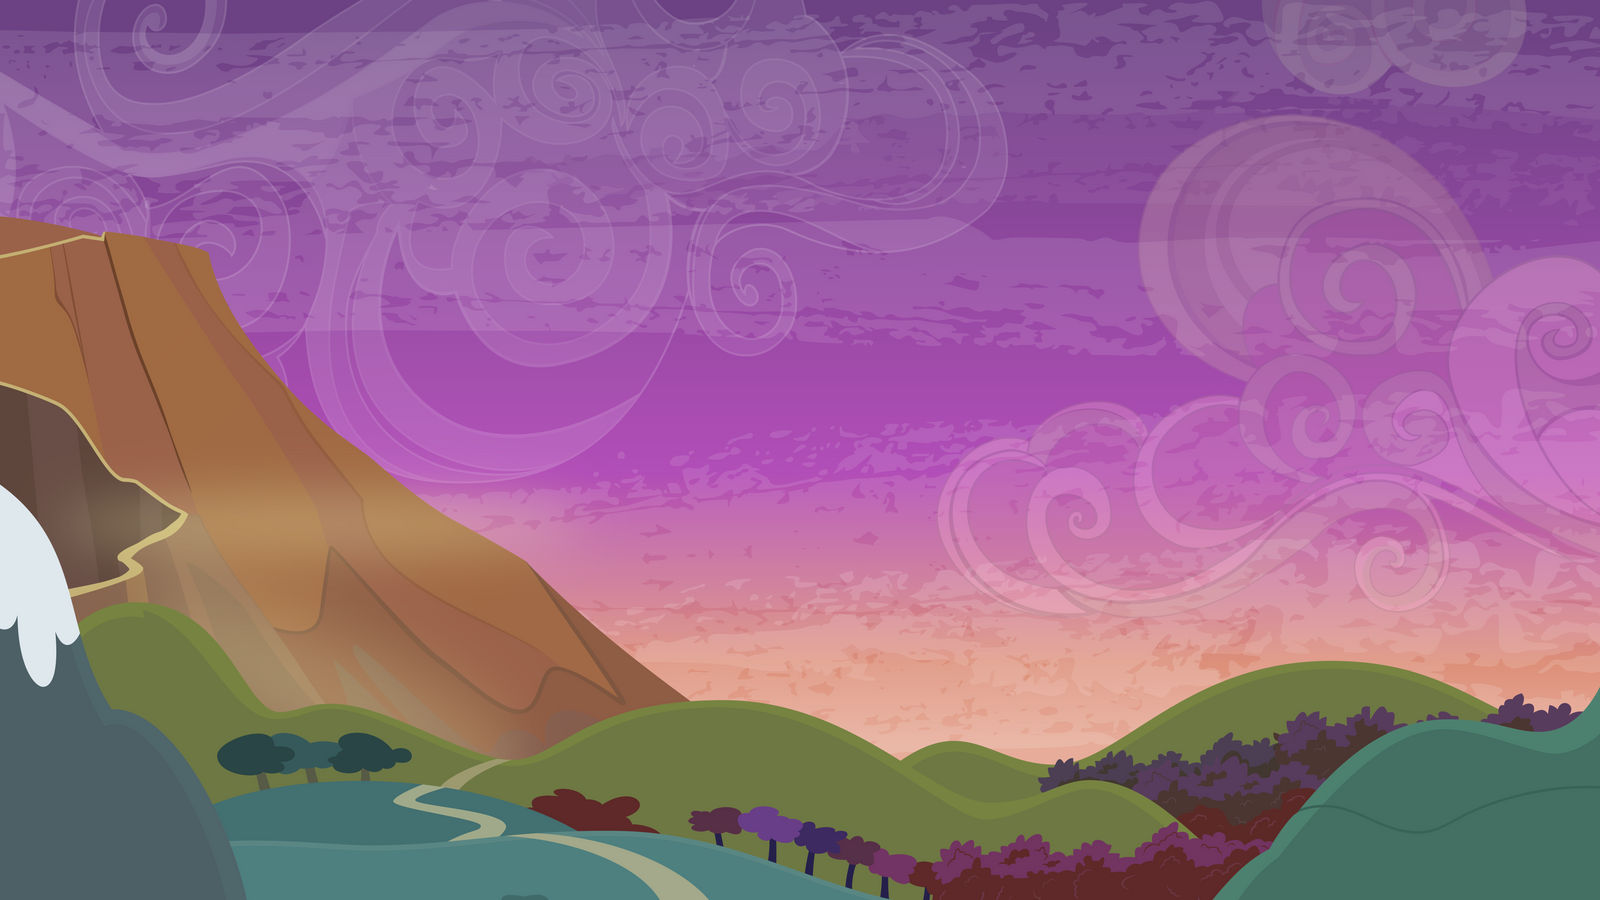 Group Background #8 - Road to a Volcano